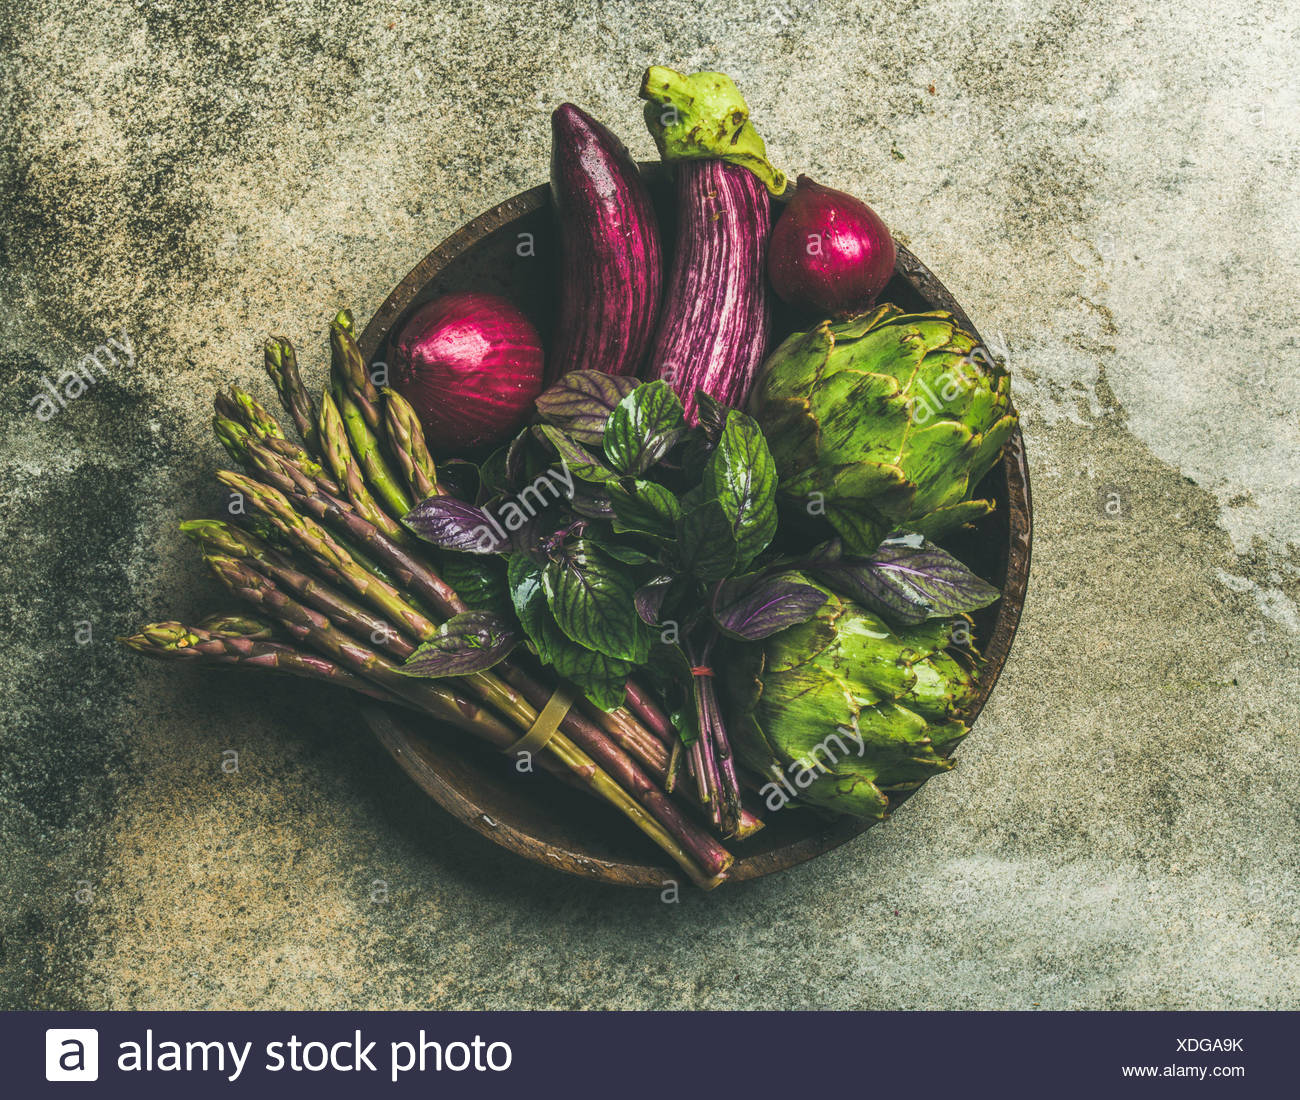 Flat-lay of green and purple vegetables on plate over grey background, top view. Local produce for healthy cooking. Eggplans, beans, kale, asparagus,  - Stock Image